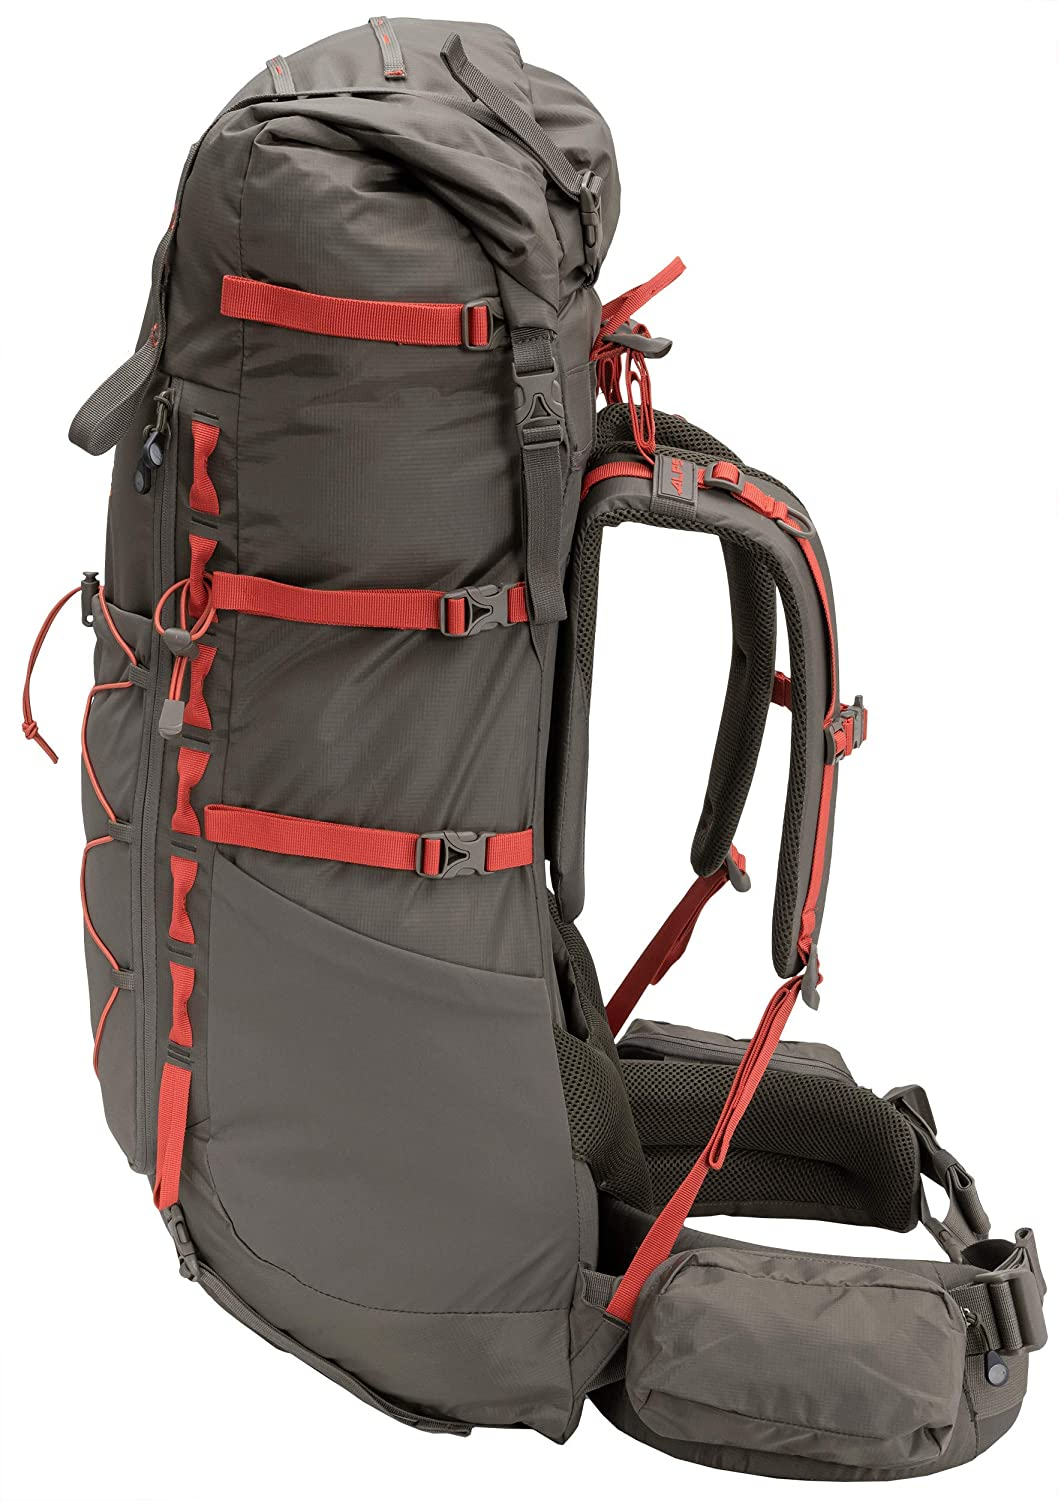 ALPS Mountaineering Nomad Internal Frame Backpack 65L-85L Gray//Blue 6624033